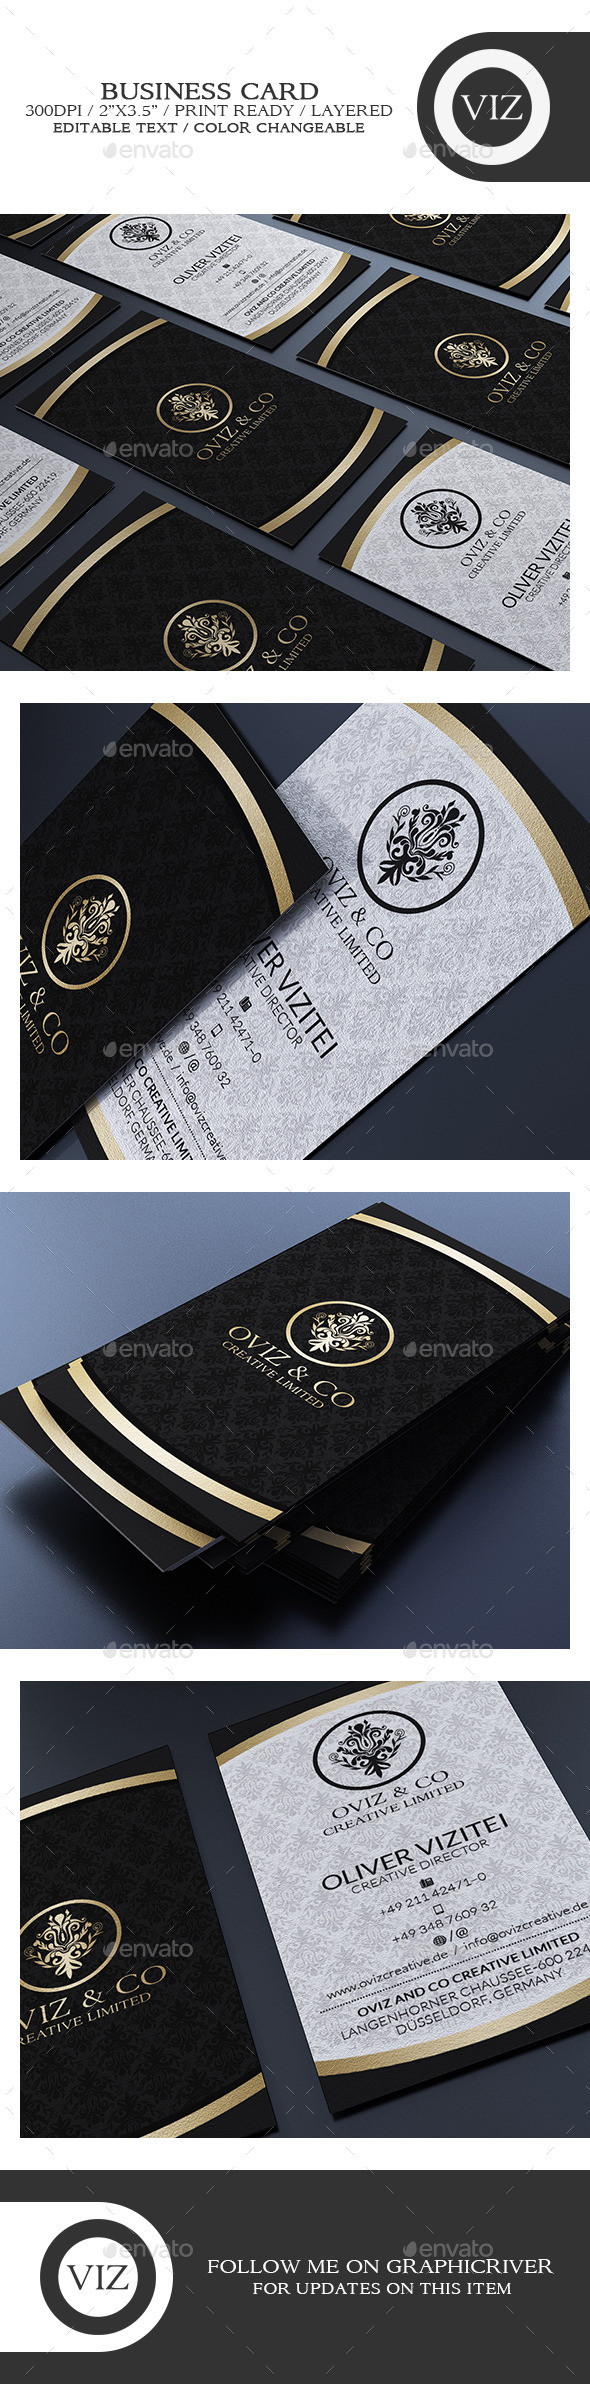 Black 20and 20gold 20business 20card